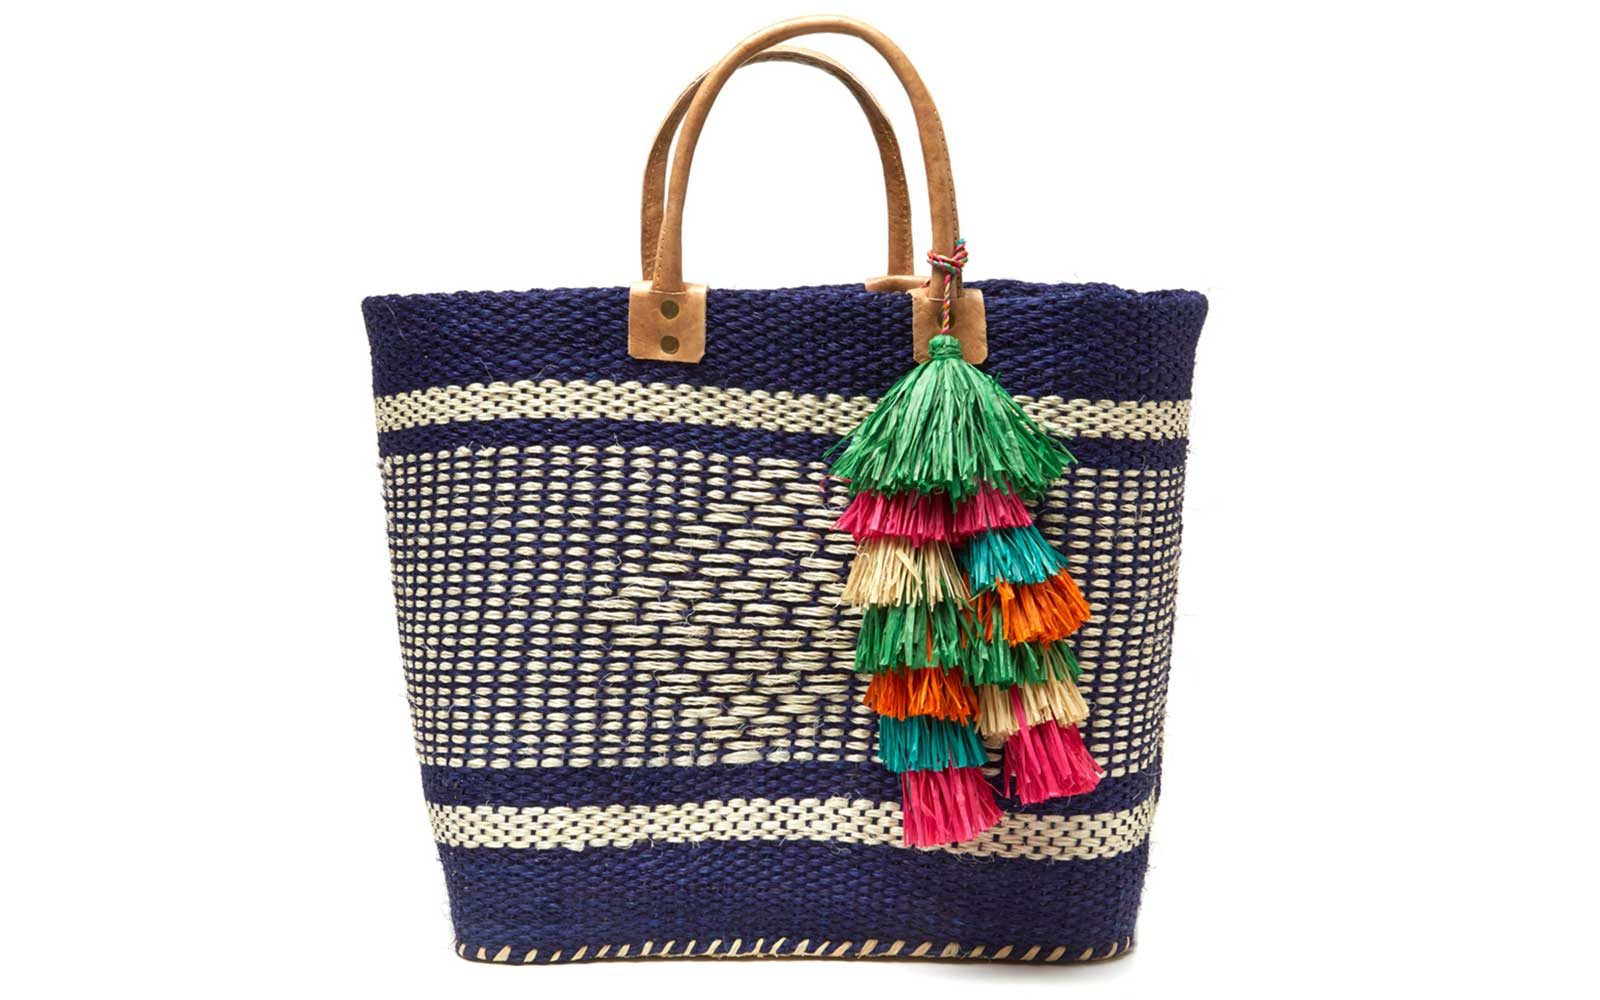 18b1b3c0b2 Stylish and Sturdy Beach Bags You Can Use As a Carry-on